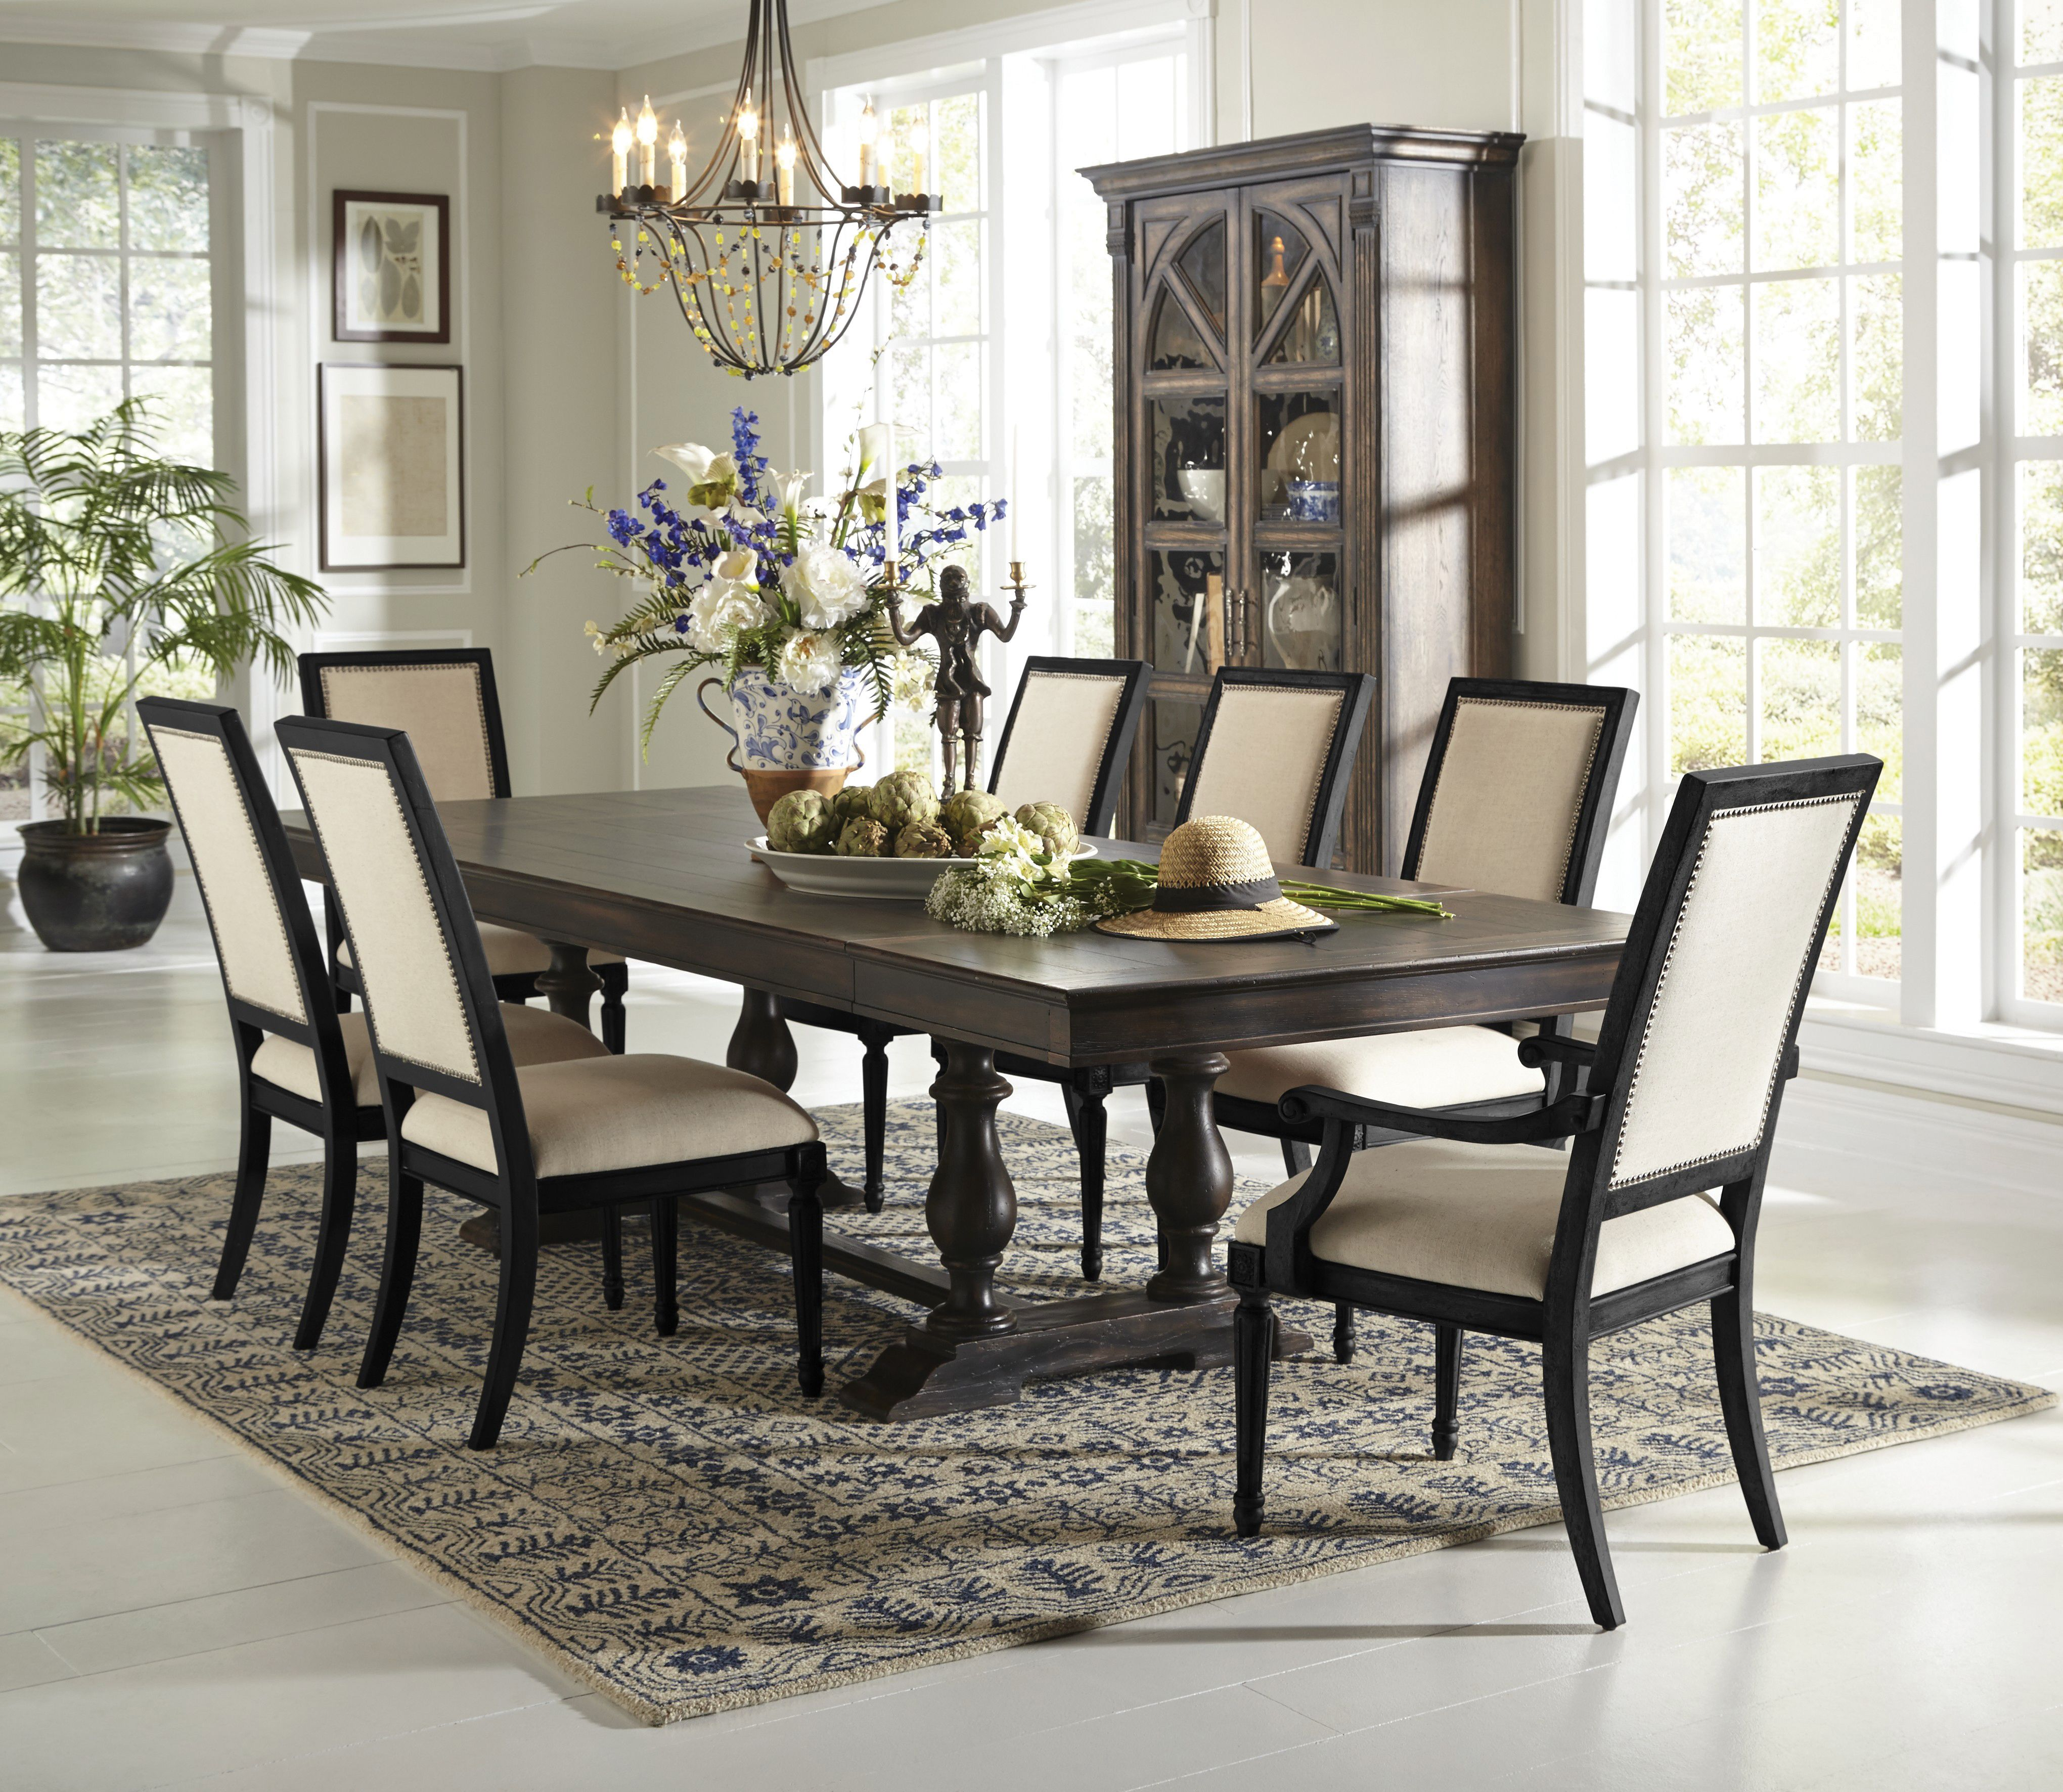 Fine Dining Accent Dining Room Set From Accentrics Home By Pulaski Furniture Dining Room Sets Dining Room Furniture Dining Table